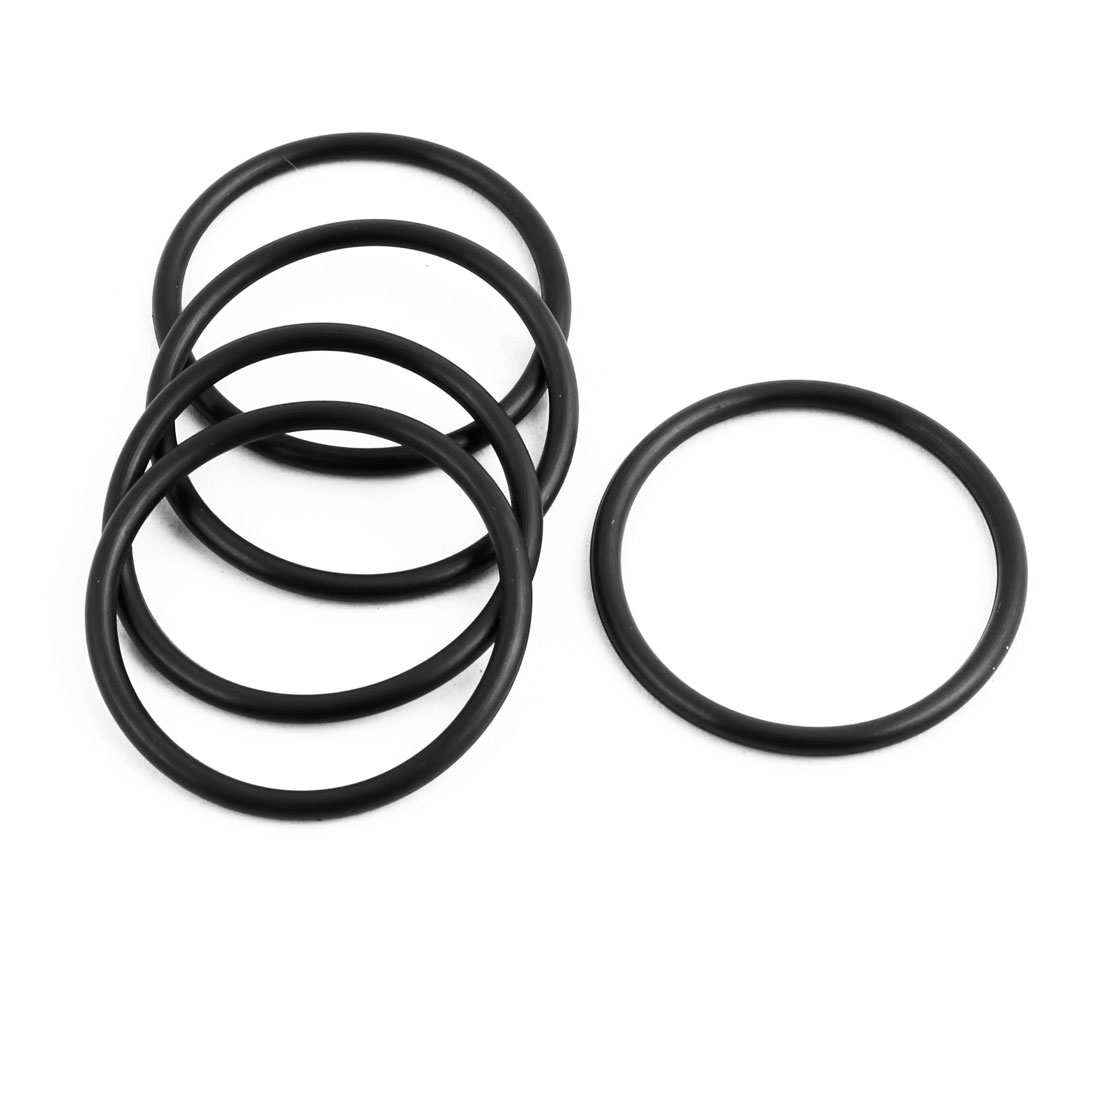 5Pcs Black 30 x 2mm Industrial Flexible Rubber O Ring Oil Sealing Grommets